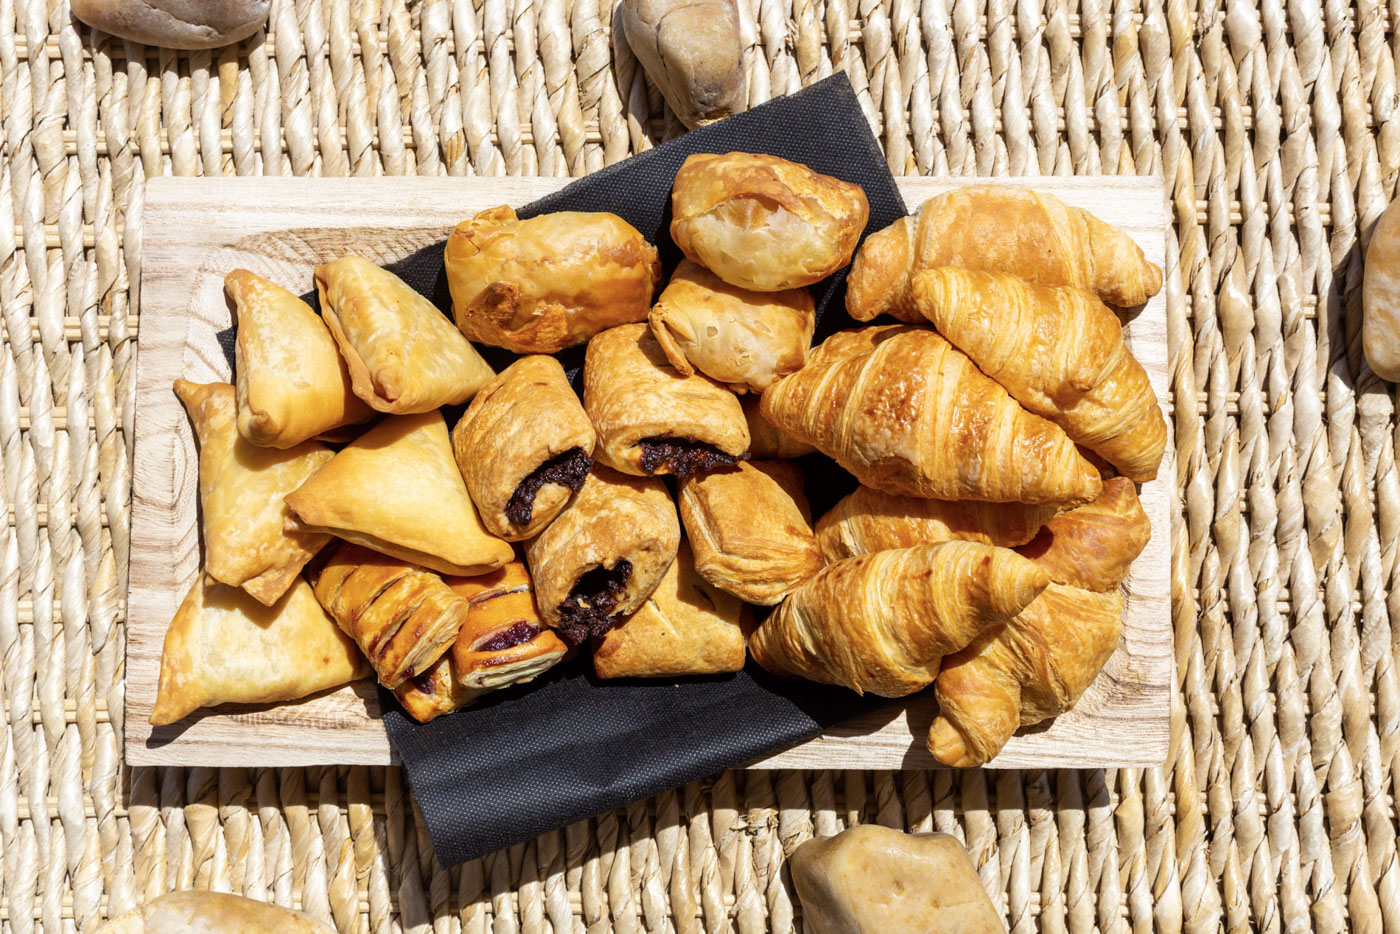 Elysian luxury hotel and spa Kalamata croissants